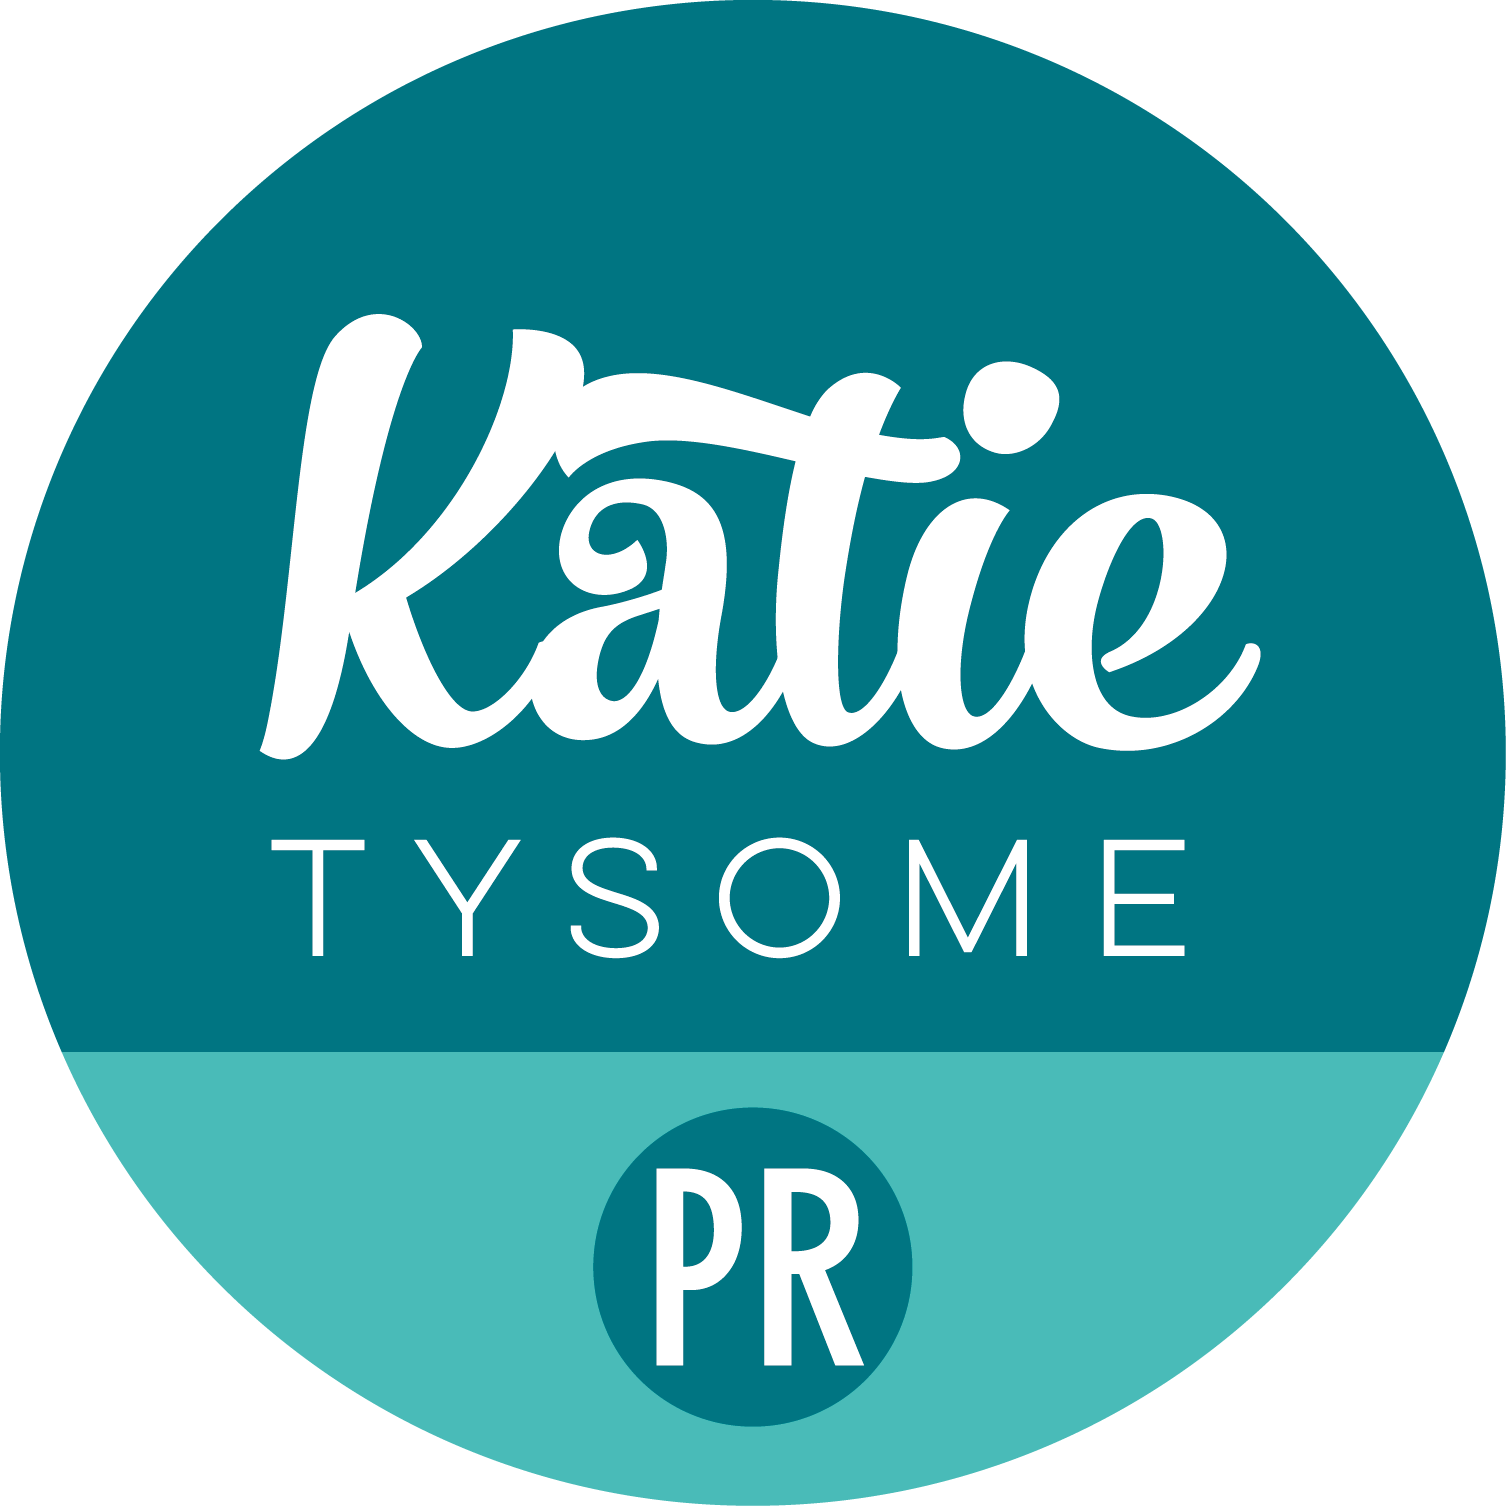 Katie Tysome PR and communications